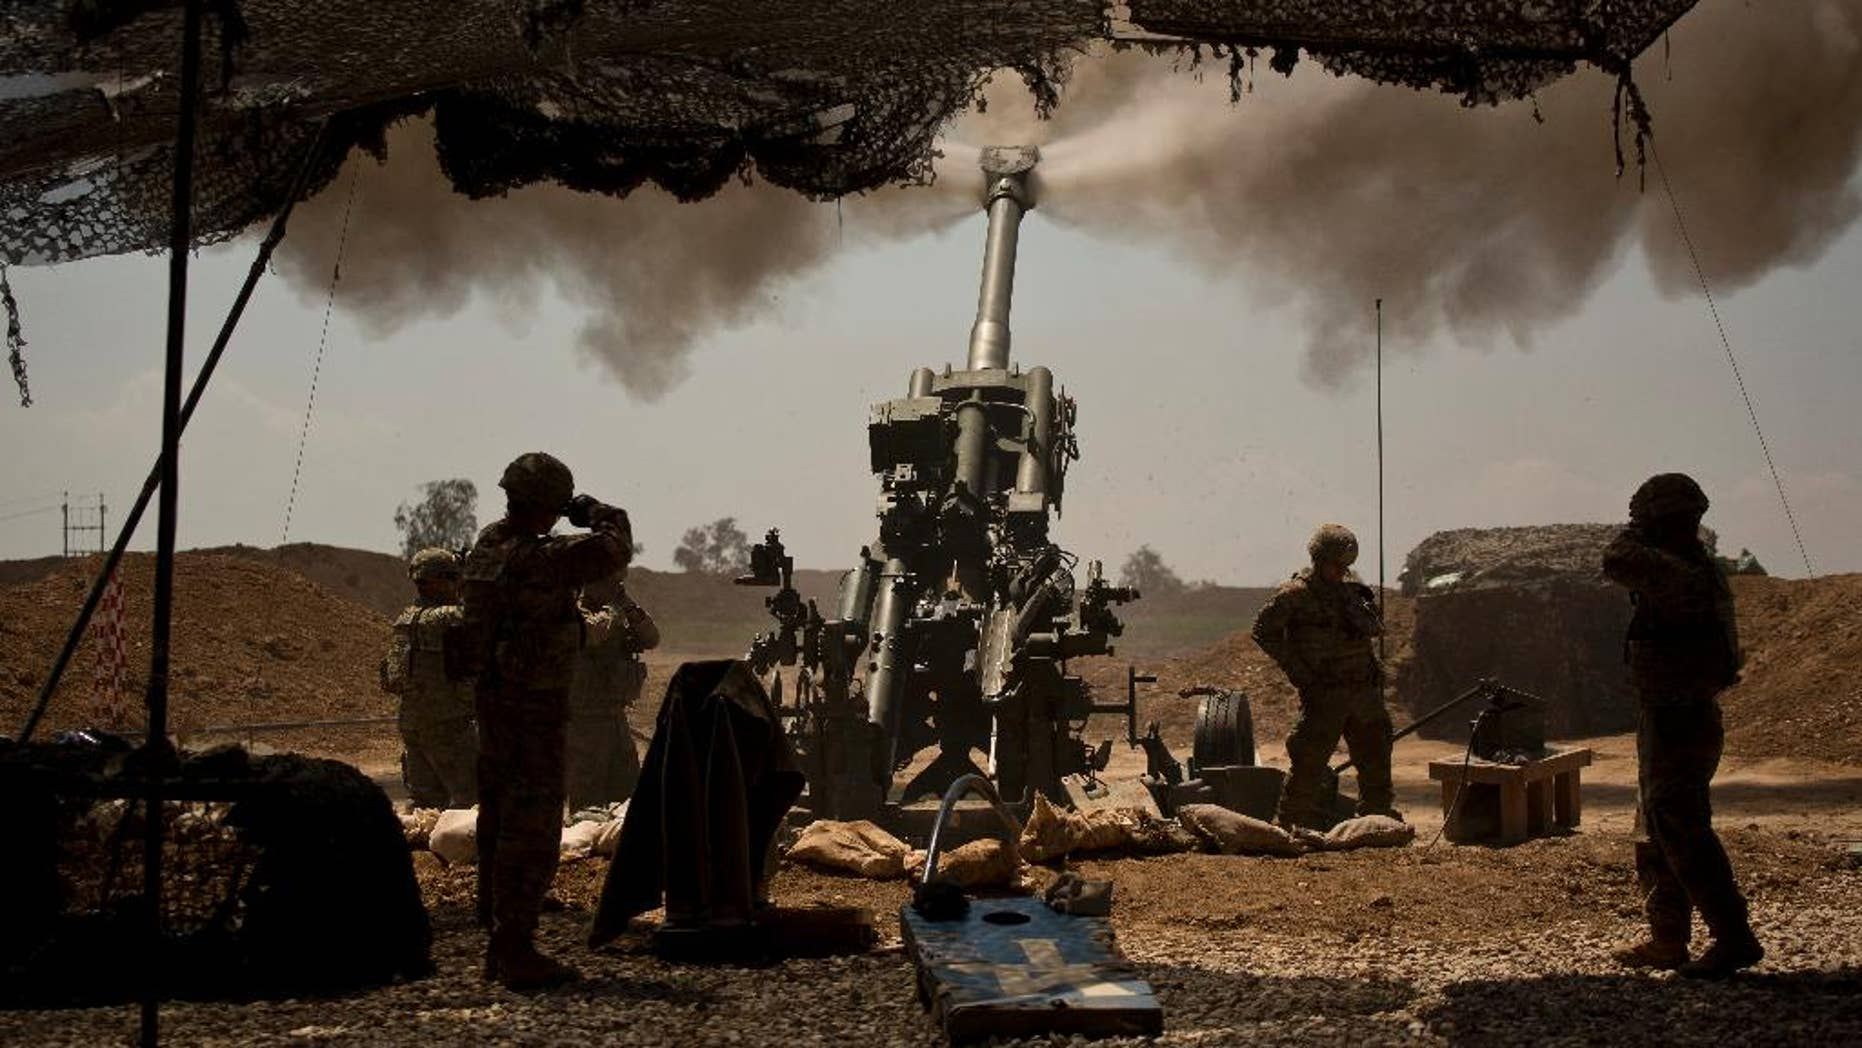 U.S. soldiers from the 82nd Airborne Division fire artillery in support of Iraqi forces fighting Islamic State militants from their base east of Mosul on Monday, April 17, 2017. The soldiers are from C Battery, 2nd Battalion, 319th Airborne Field Artillery Regiment. (AP Photo/Maya Alleruzzo)